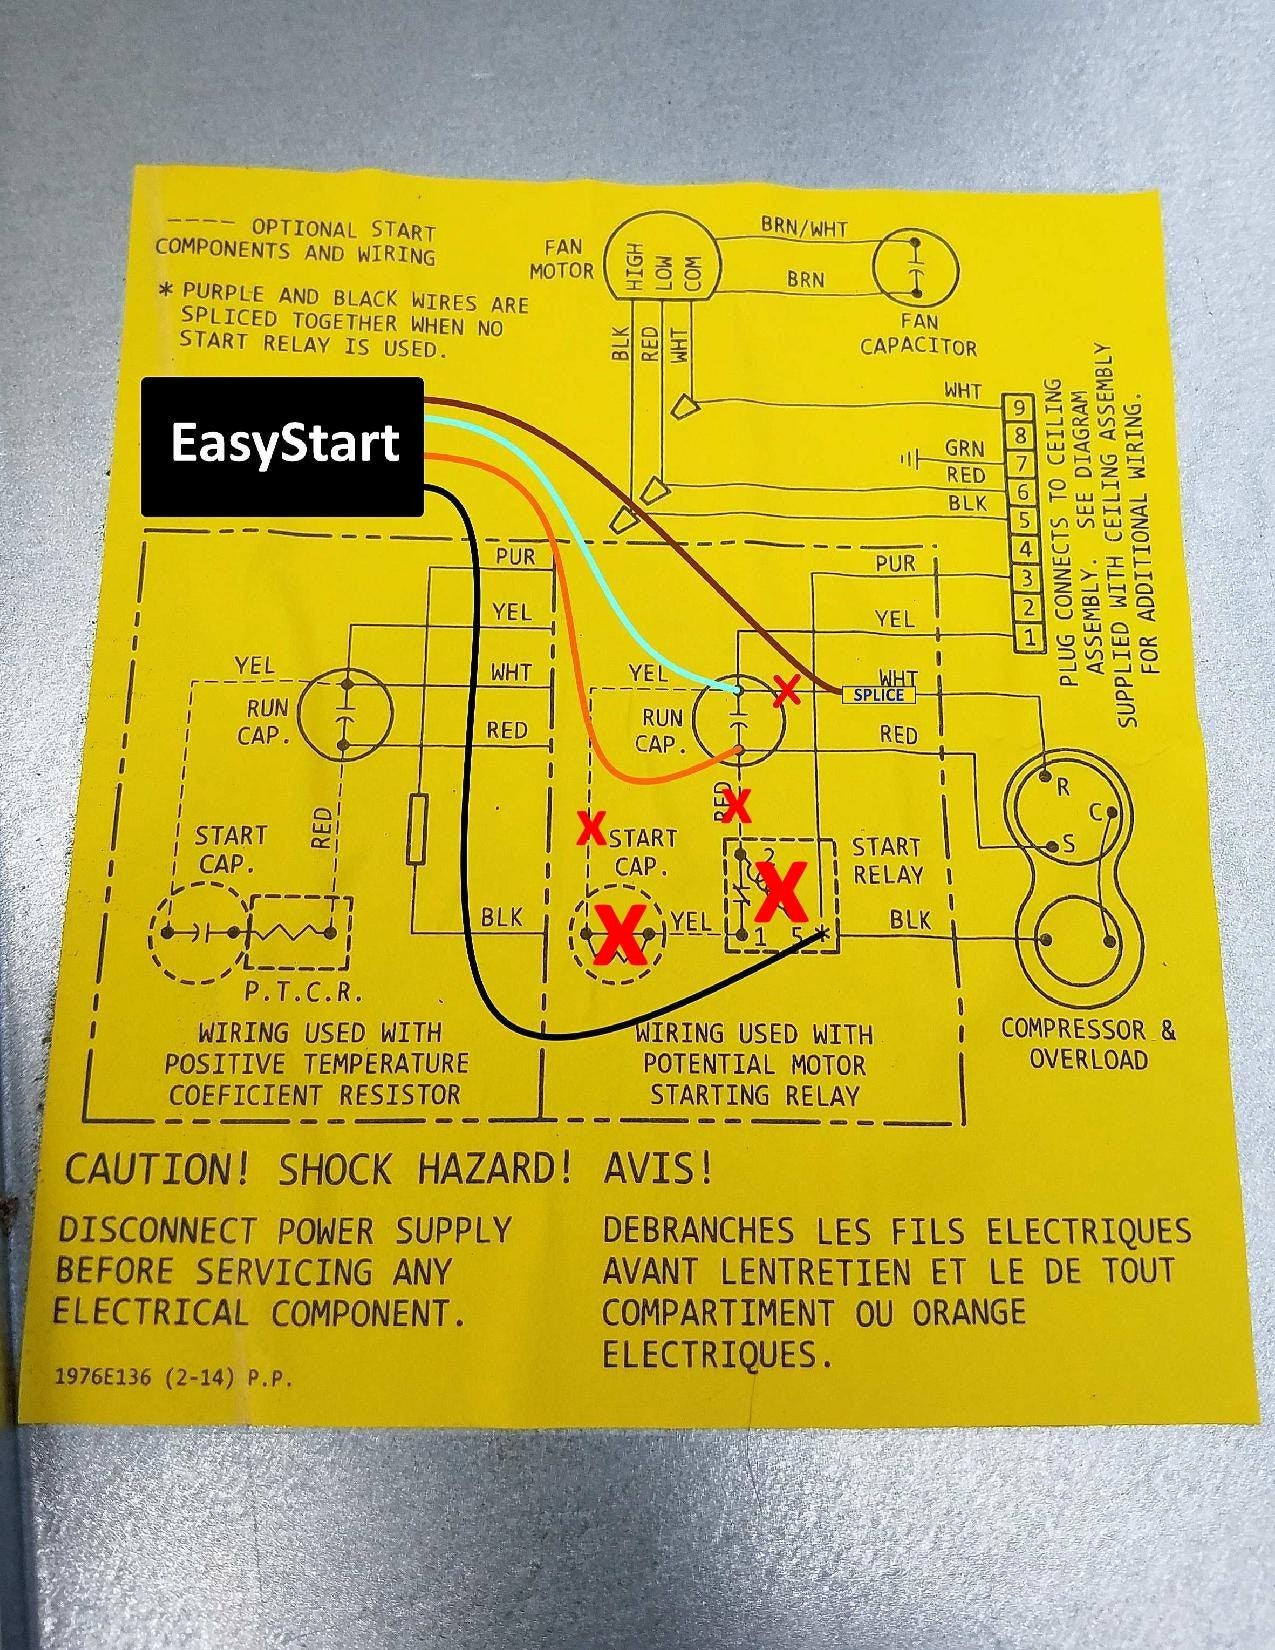 rv easystart soft starter wiring diagrams resource page micro air rh microair net